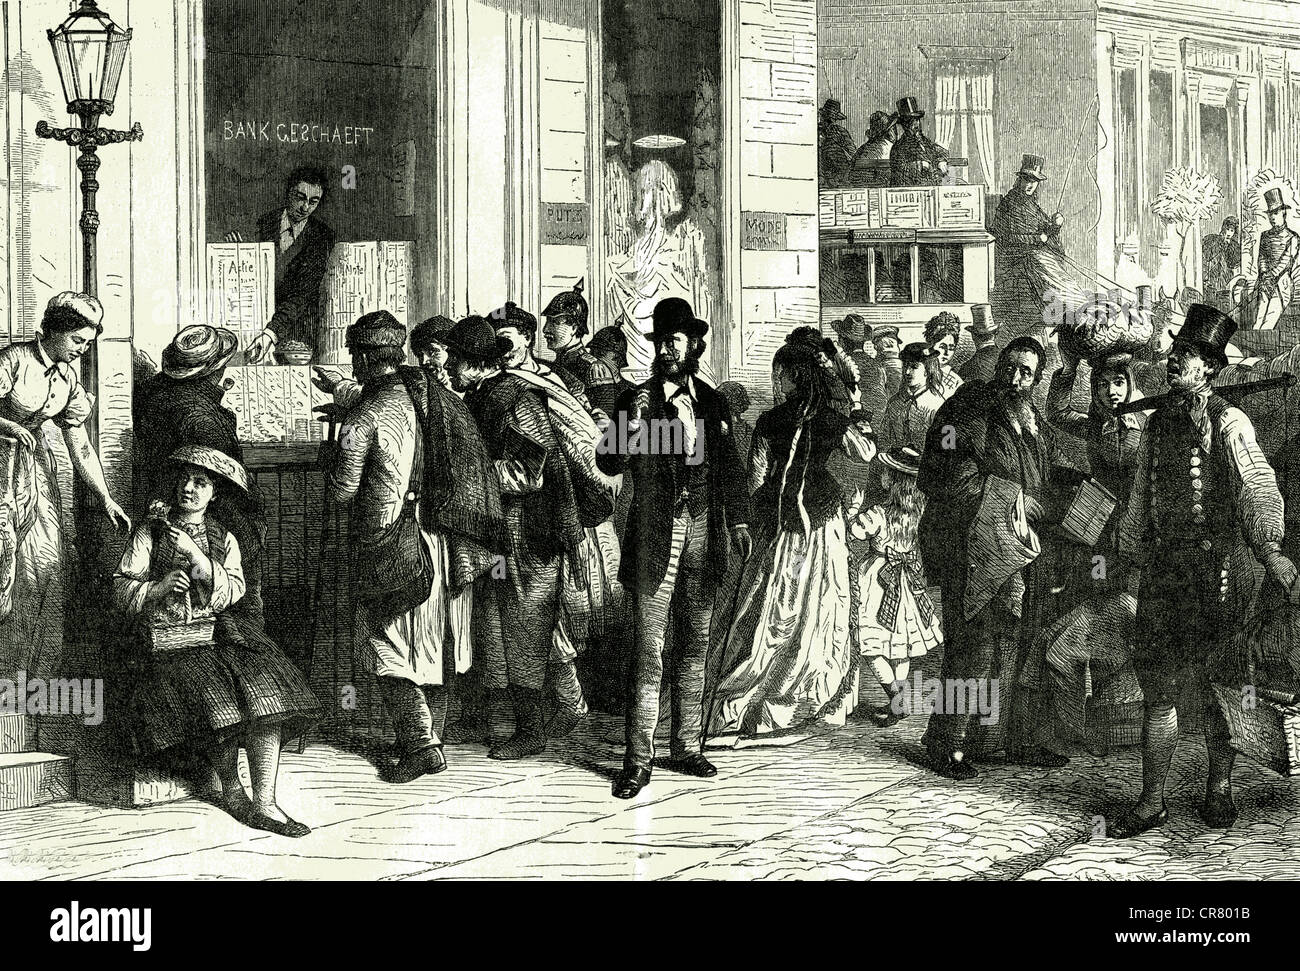 us immigration history Over time, the sources of immigration trace a clear path across the world through most of the 1800's, immigration came predominantly from western europe (ireland, germany, the uk.